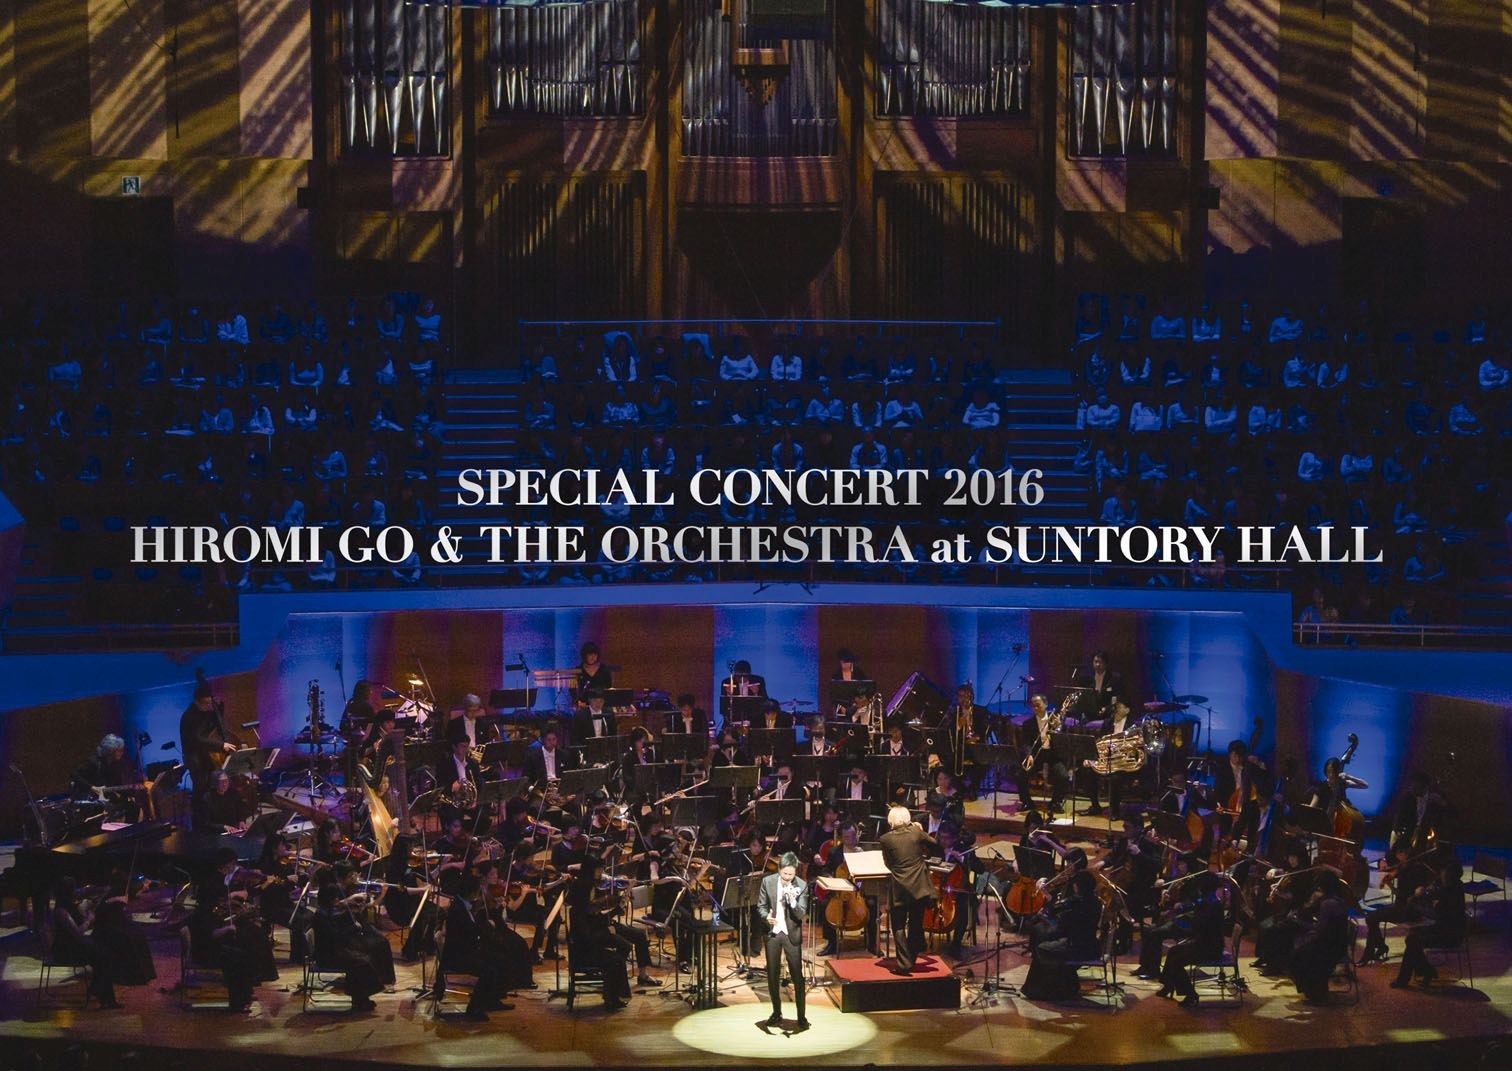 SPECIAL CONCERT 2016 HIROMI GO & THE ORCHESTRA at SUNTORY HALL【Blu-ray】画像